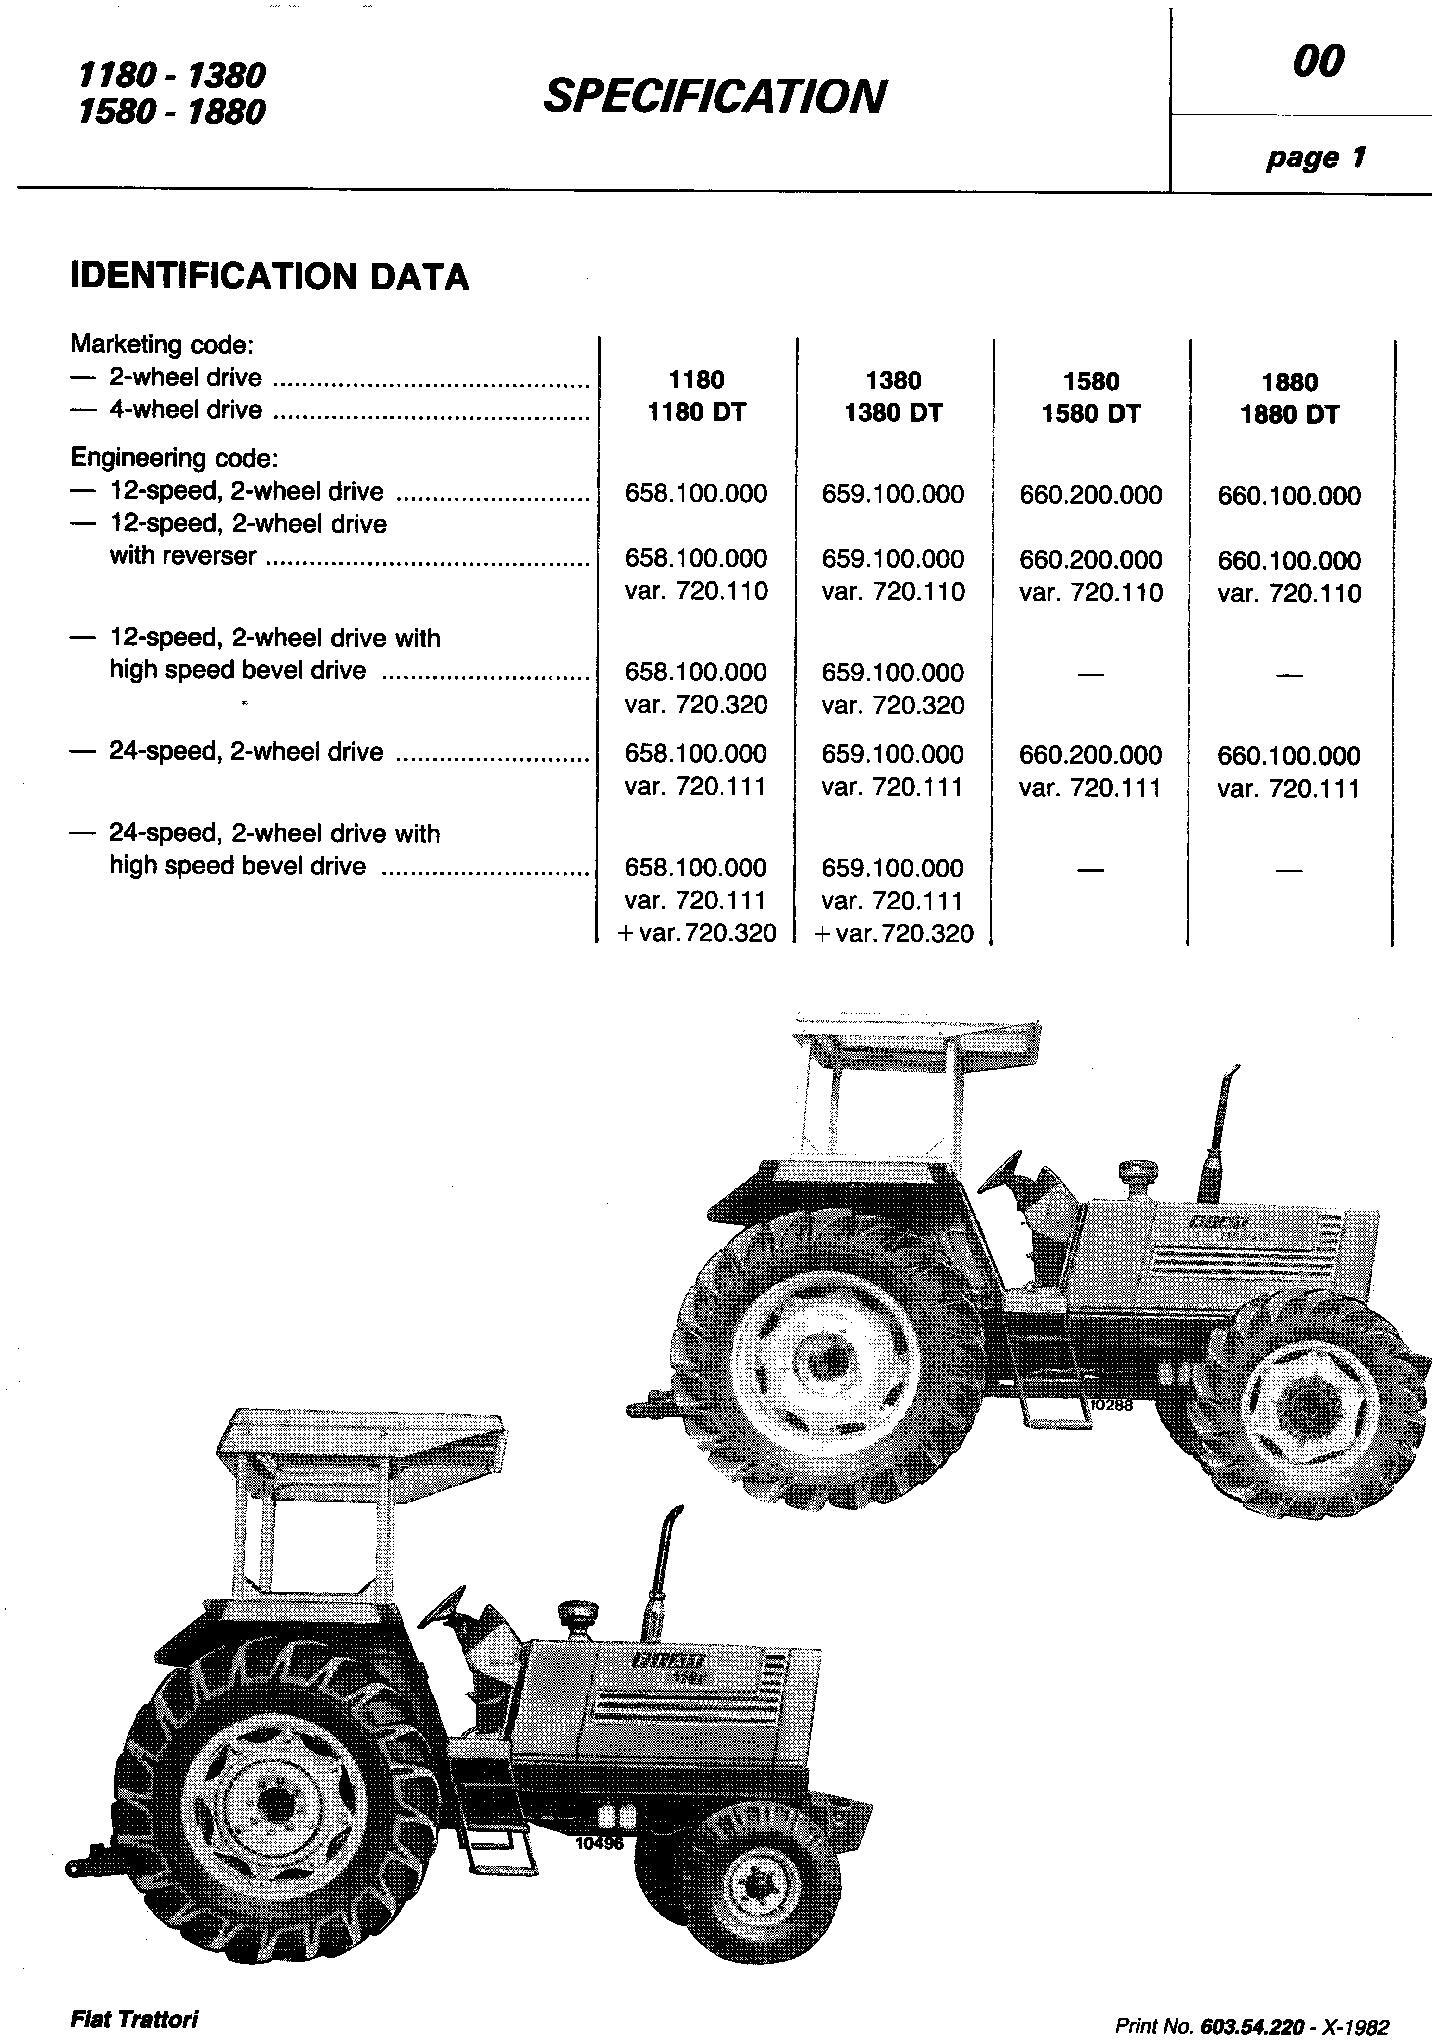 Fiat 1180, 1280, 1380, 1580, 1880 (DT) Tractor Service Manual (6035422000) - 1